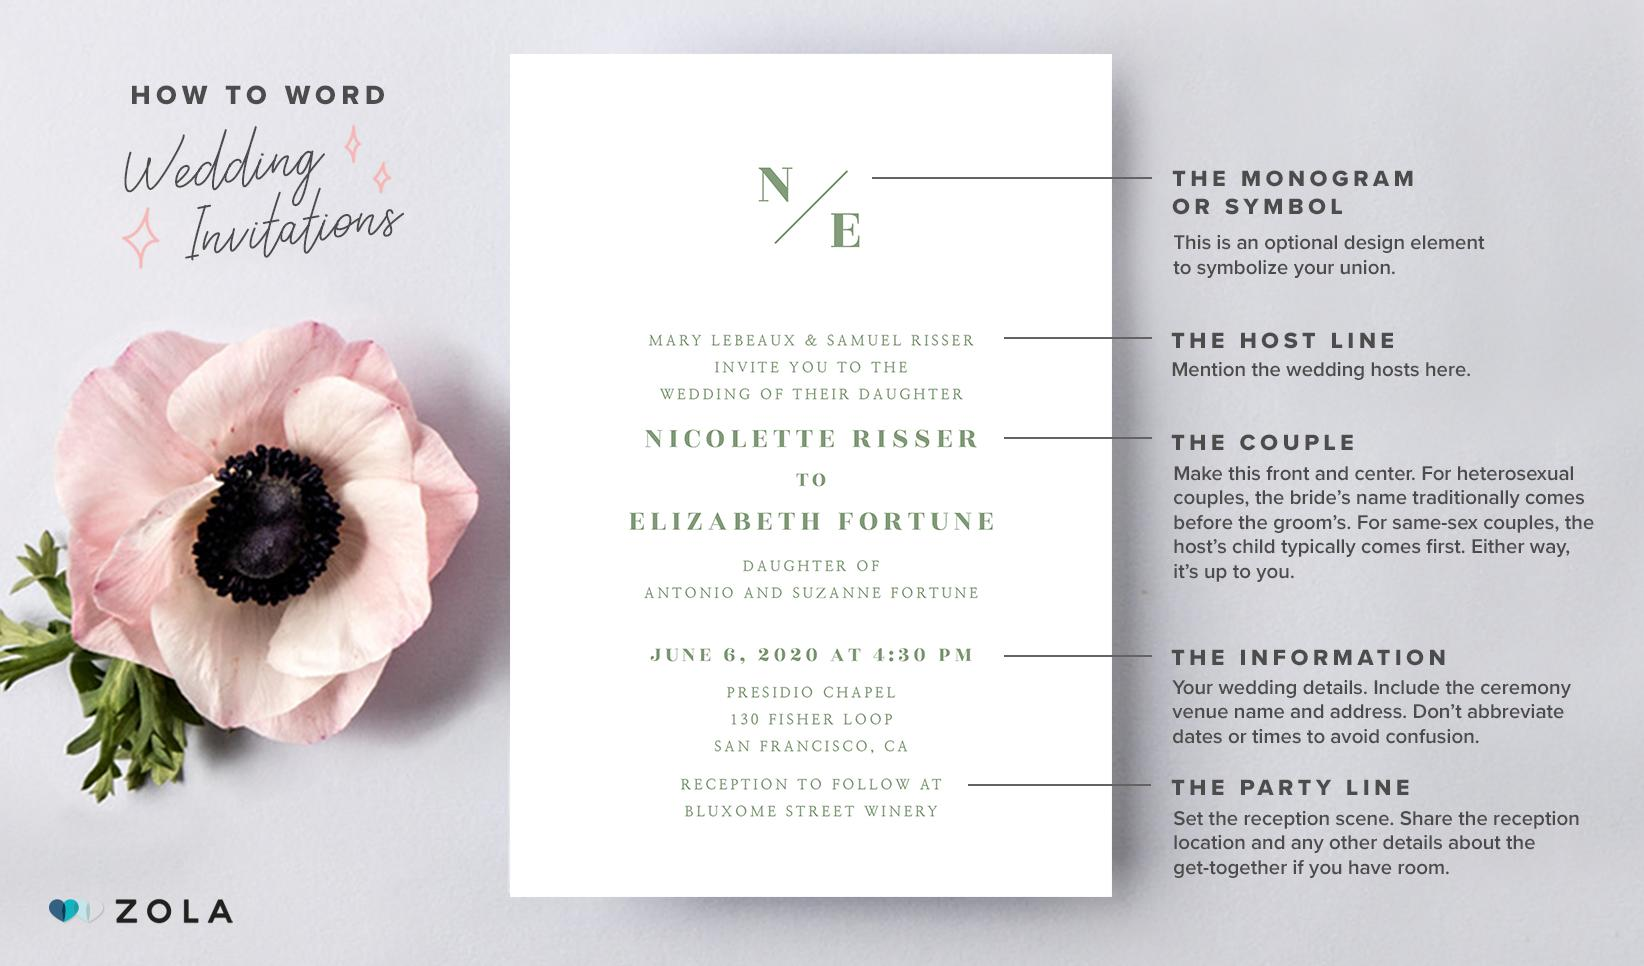 How To Word Wedding Invitations Zola